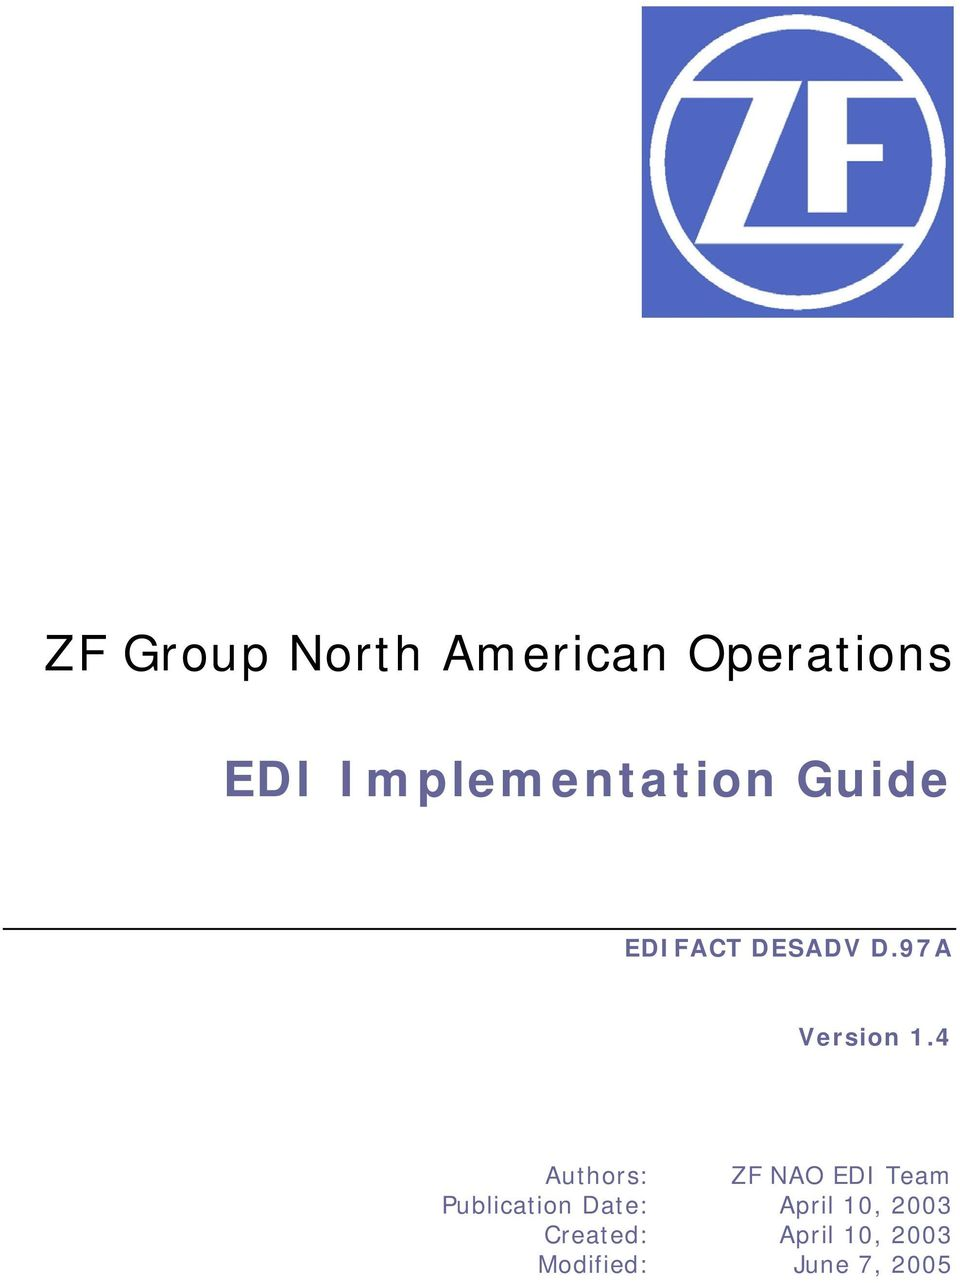 edi reference guide Edi cockpit configuration guide - download as pdf file (pdf), text file (txt) or read online.